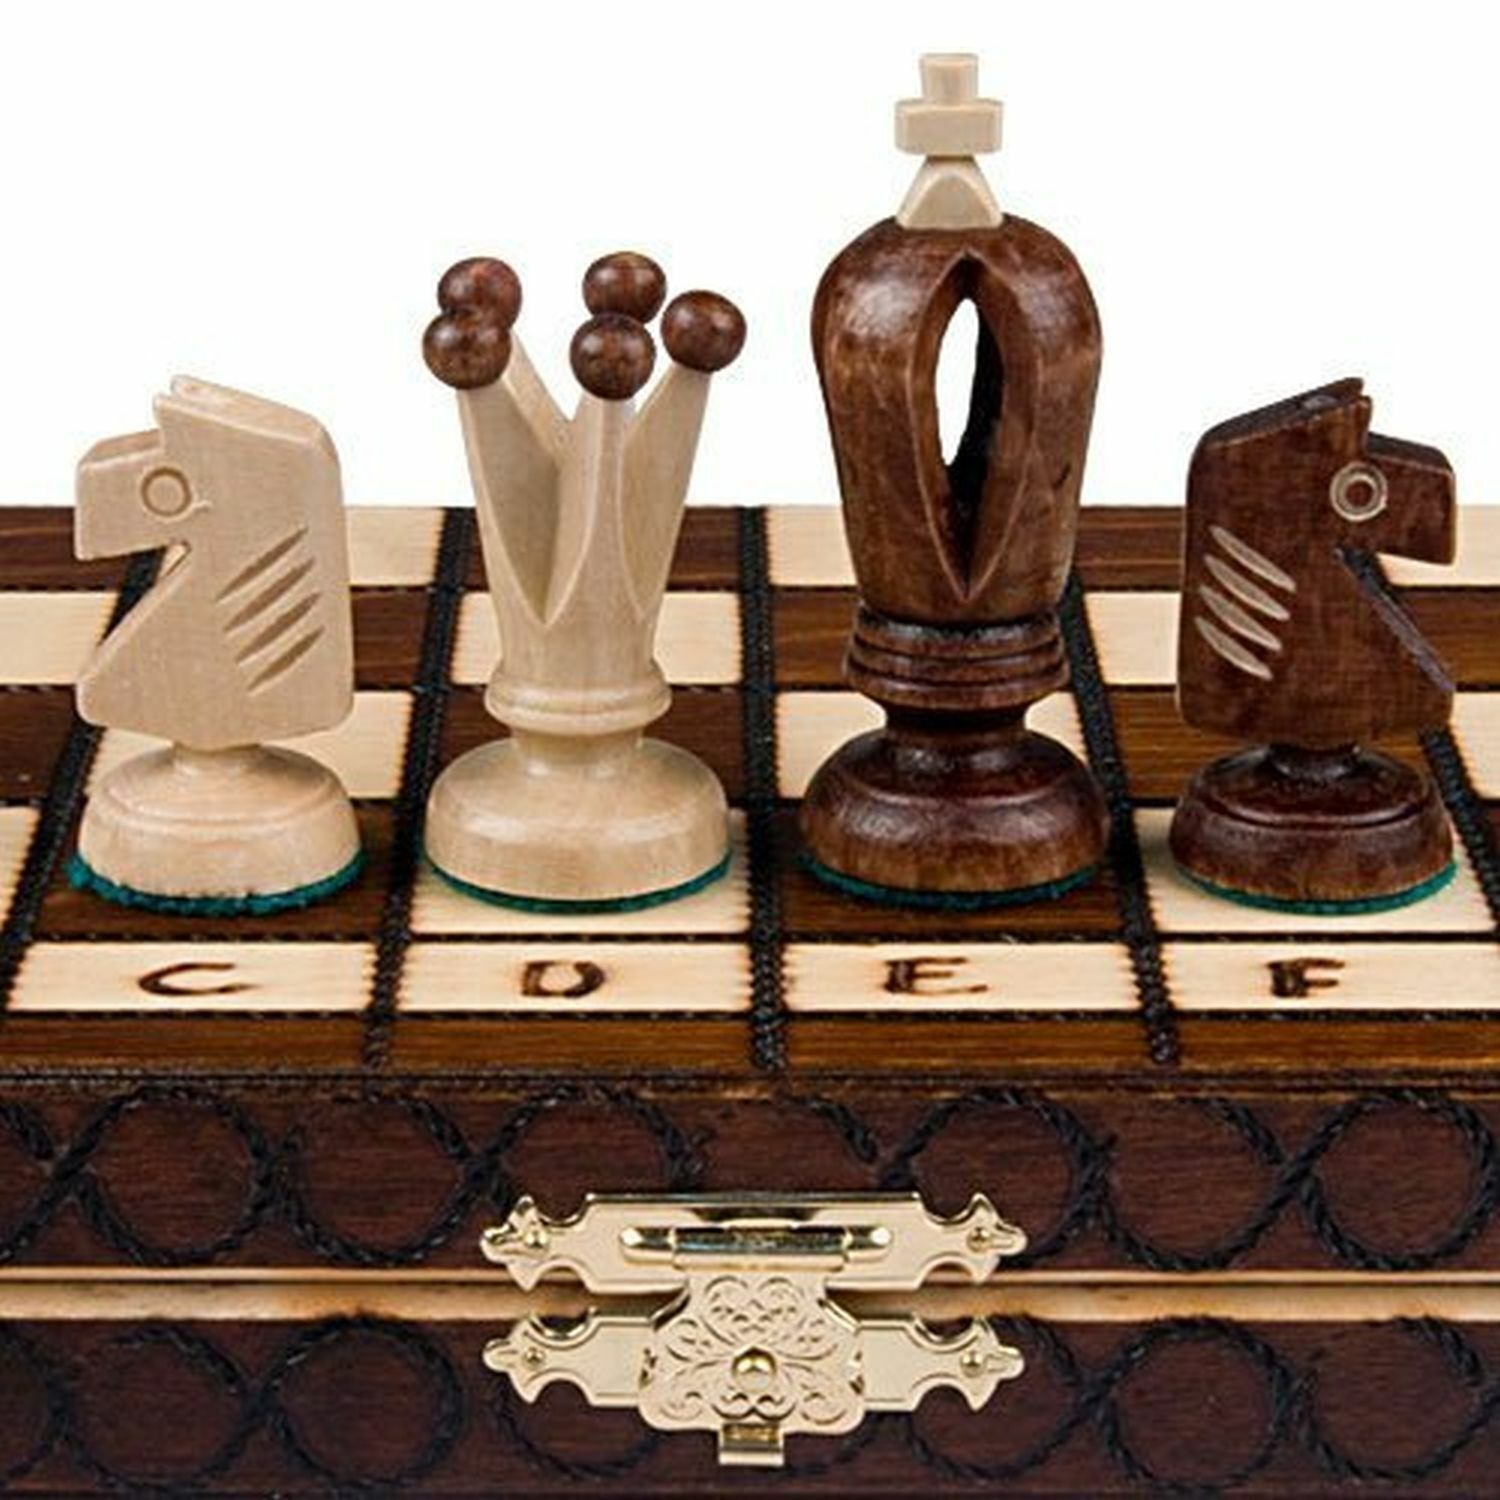 Buy Best Wooden Chess Set Wood Board Hand Carved Made Folding Game Vintage Crafted Pieces.